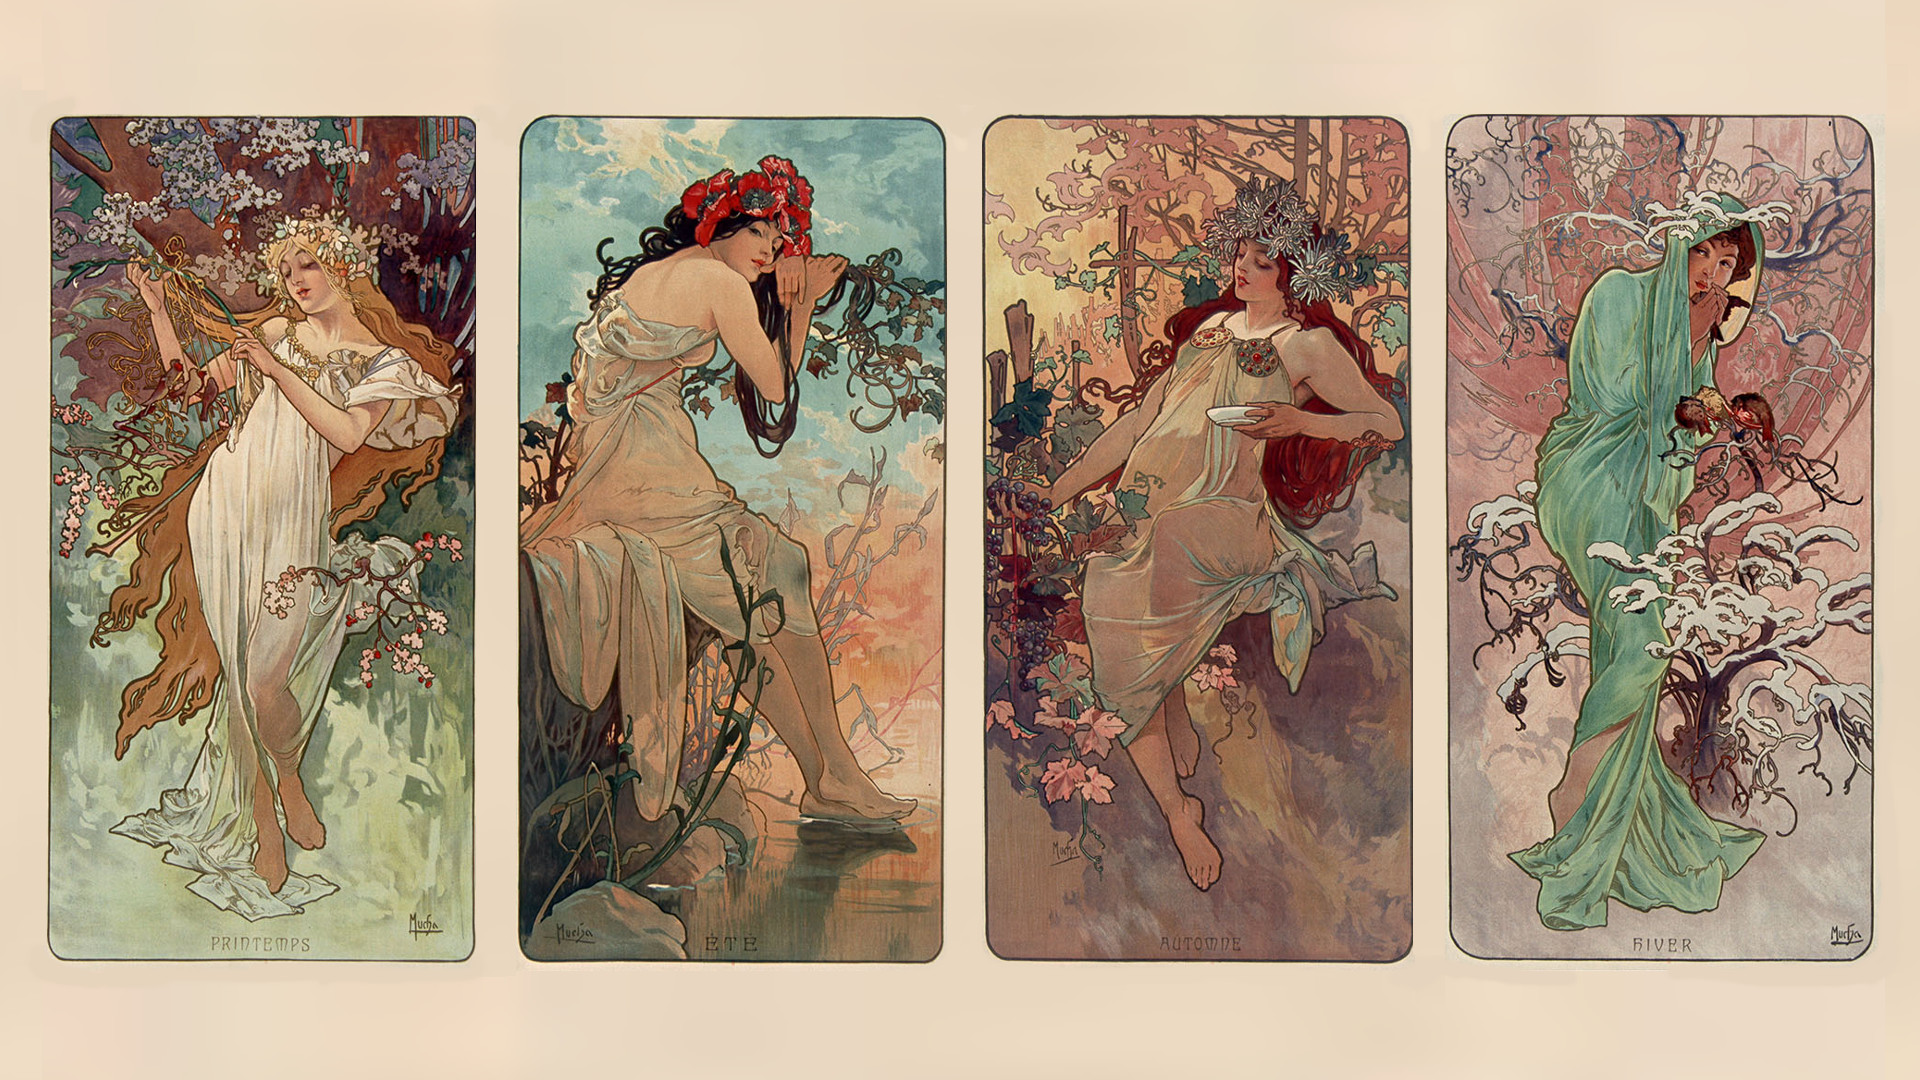 1920x1080 Alphonse Mucha Widescreen Wallpaper.